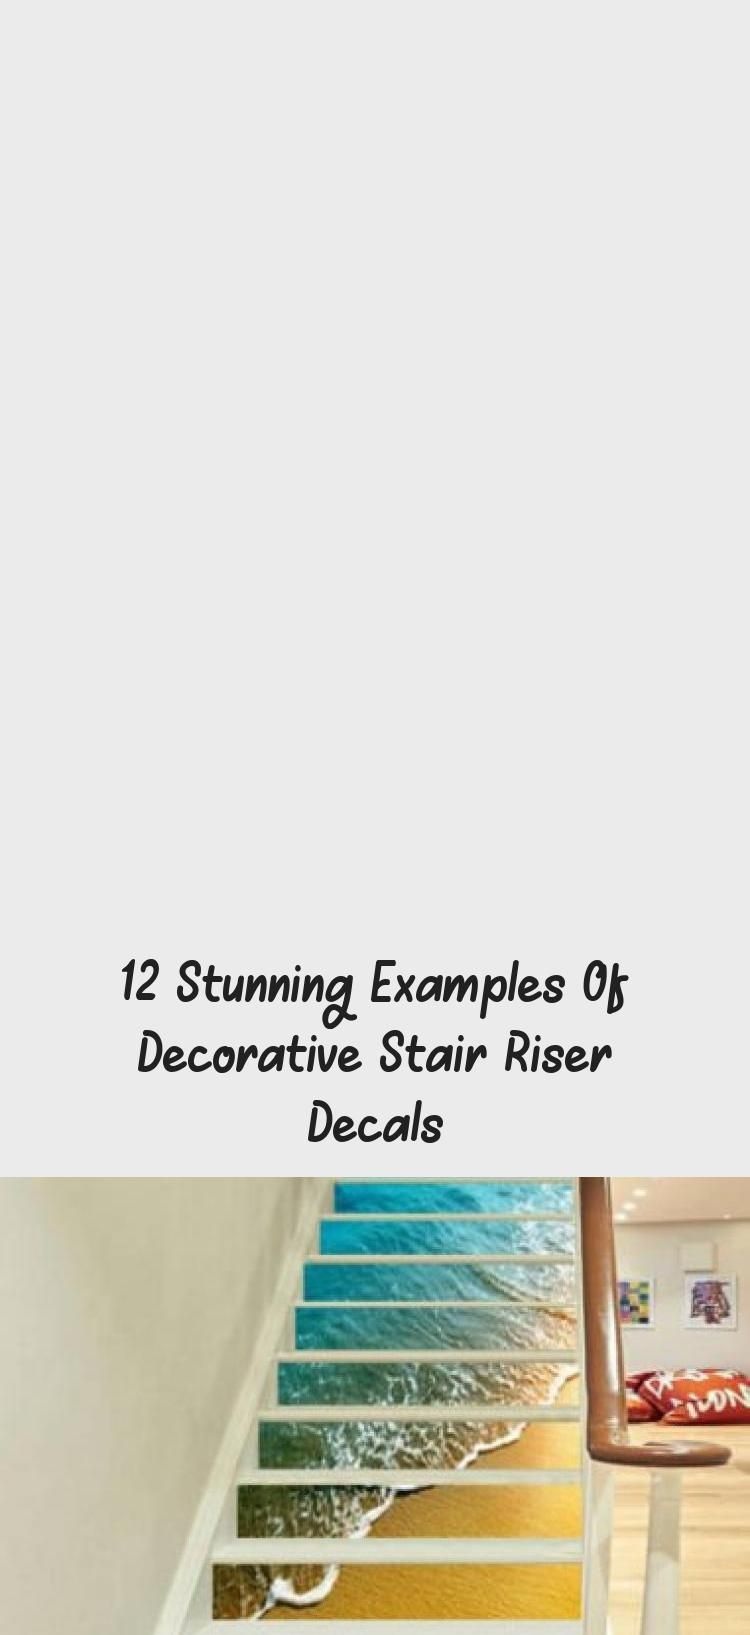 12 Stunning Examples Of Decorative Stair Riser Decals Decorative stair riser decals  removable vinyl and easy DIY projects  staircase makeovers